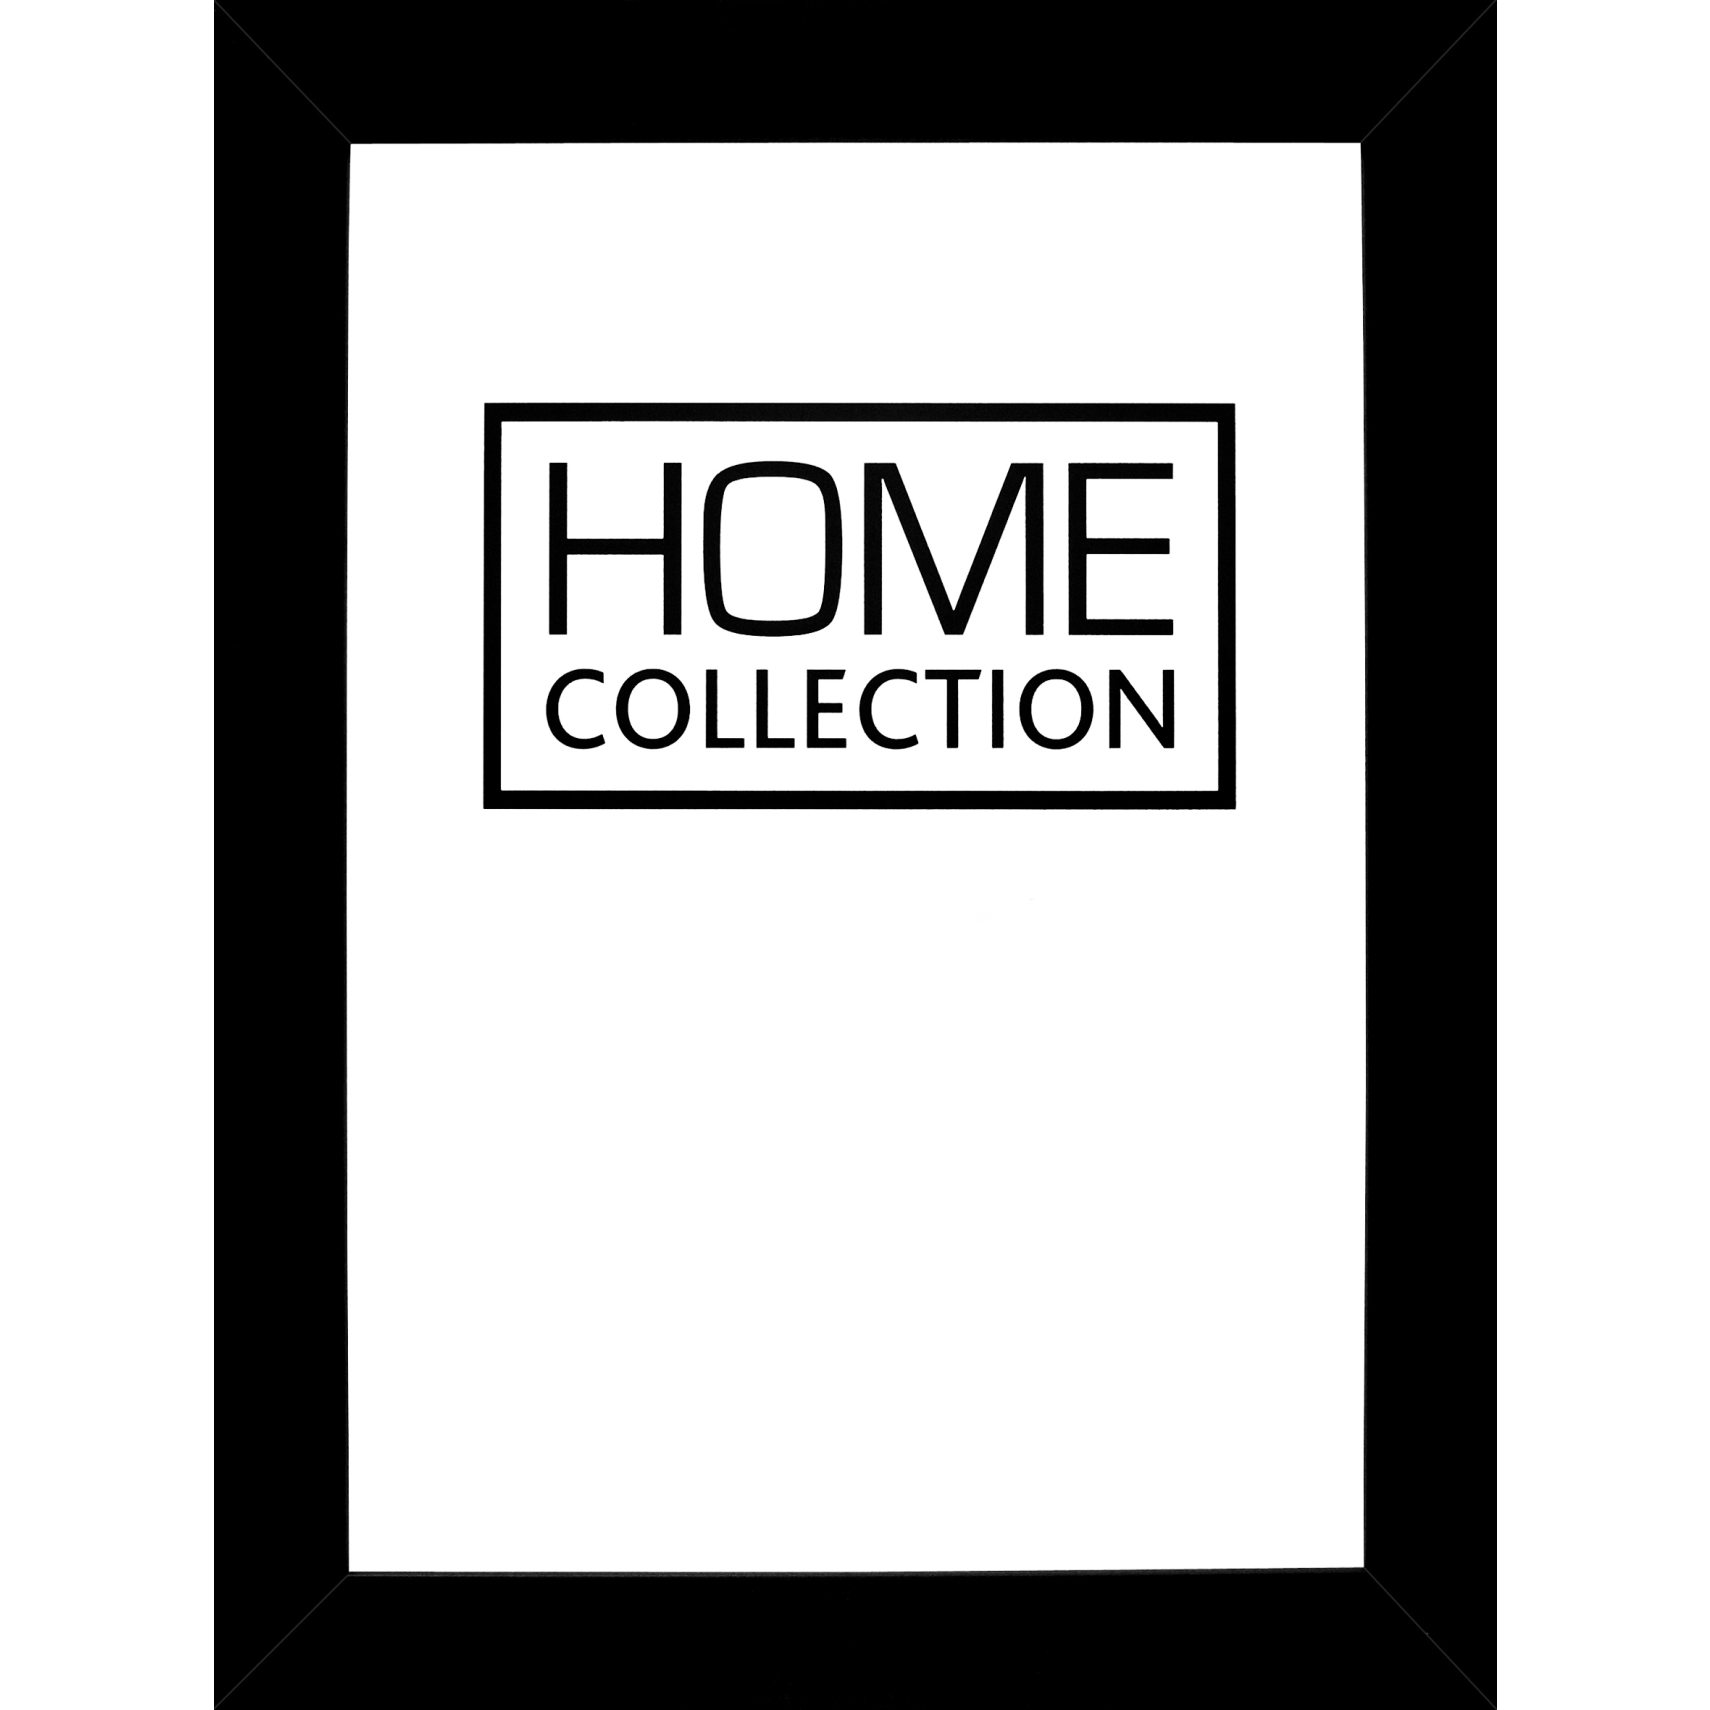 HOME COLLECTION Ram 21 x 30 x 1 cm